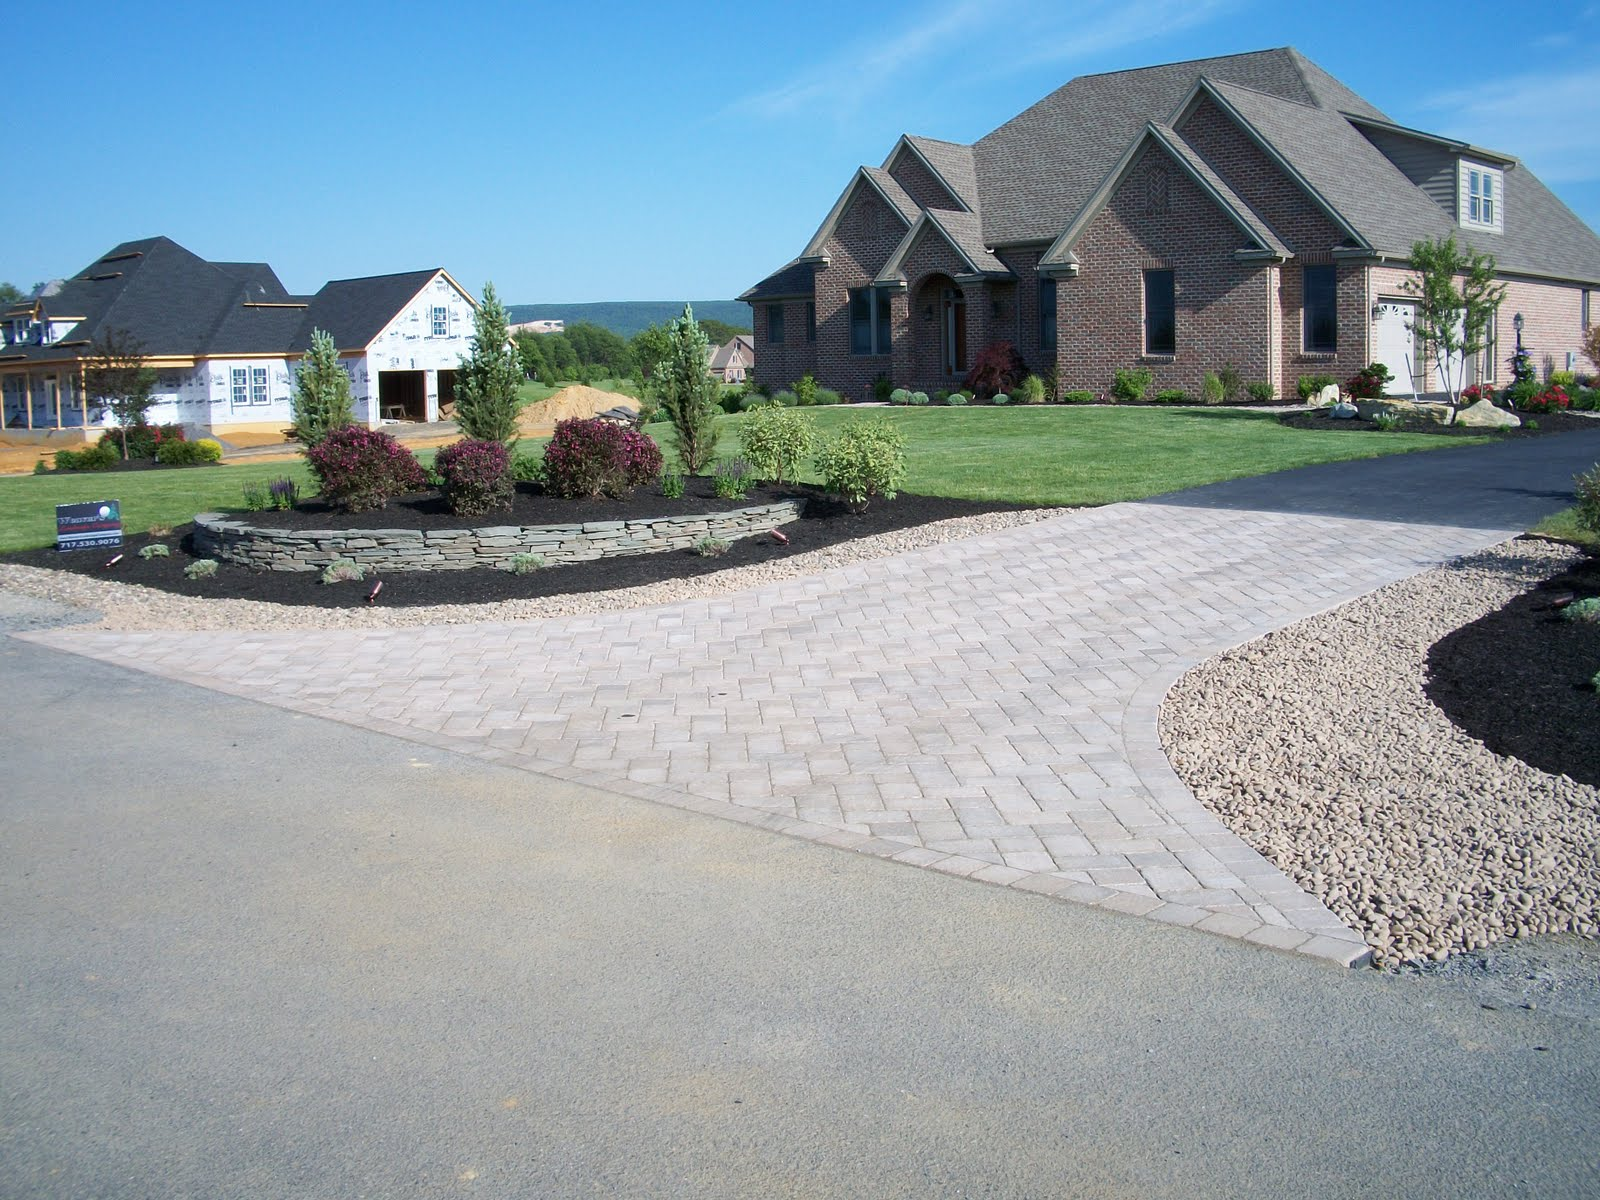 The blog of weavers landscape company paver driveway entrance for Driveway landscaping